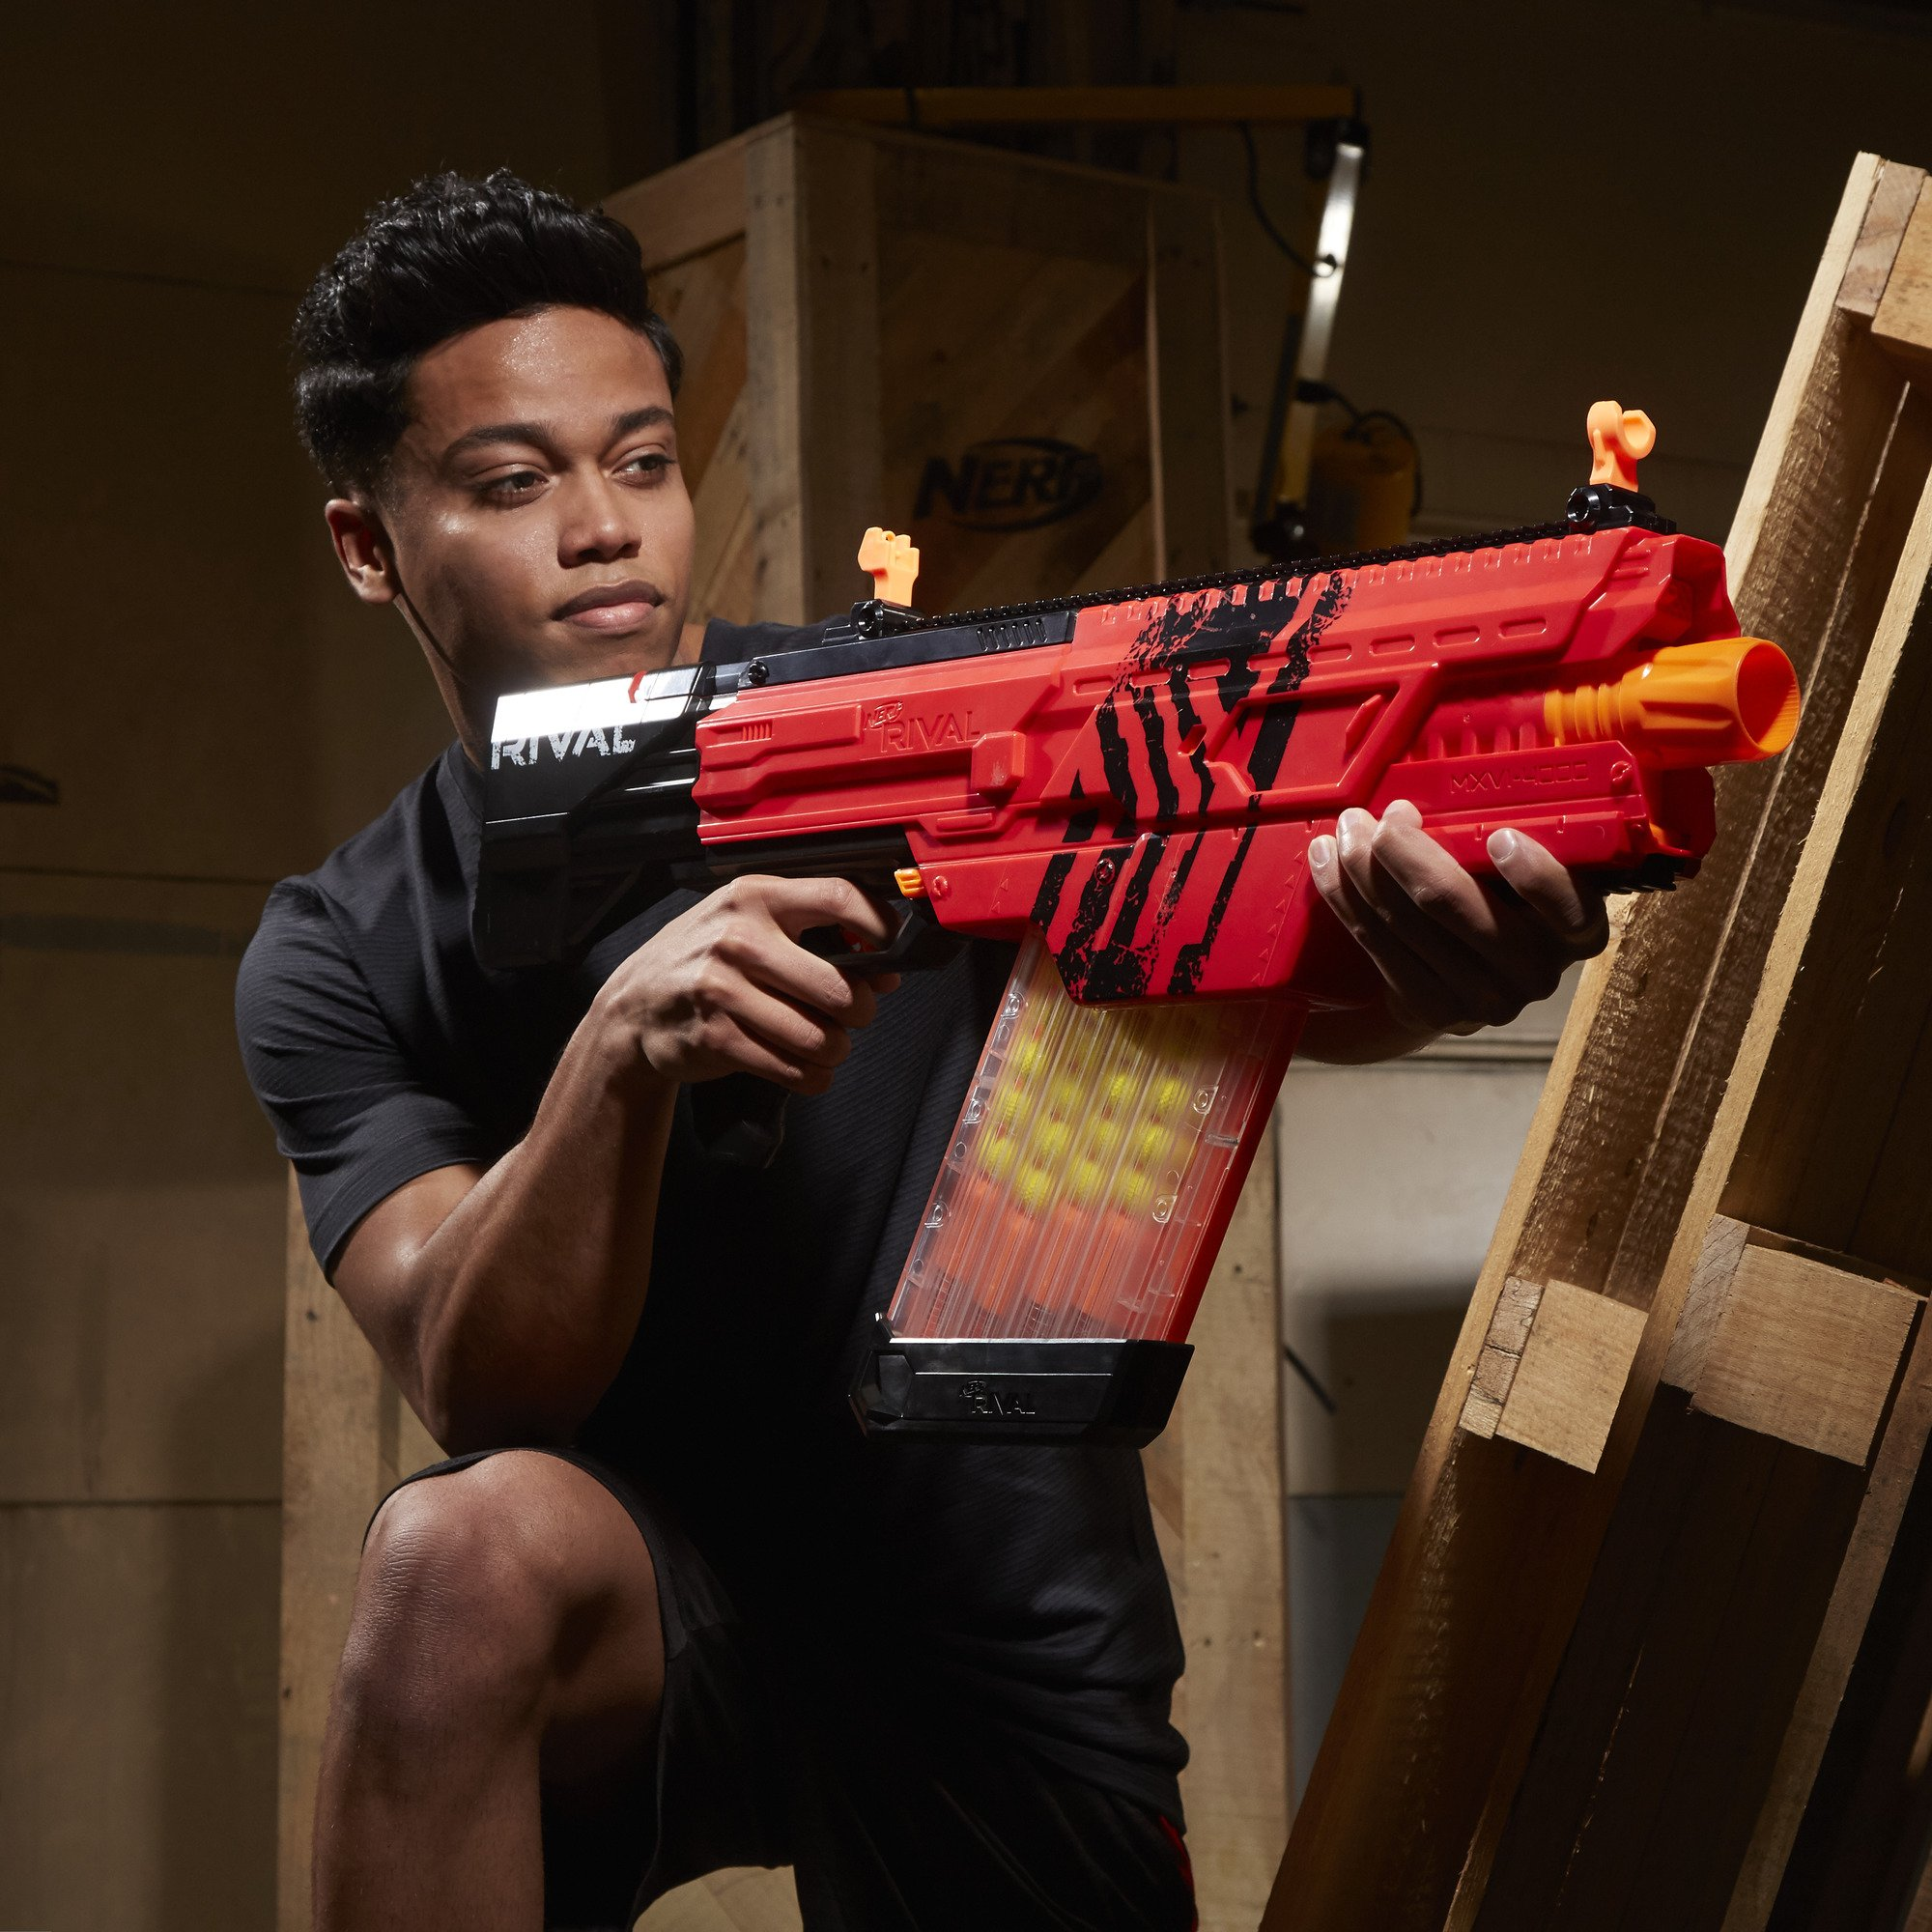 Nerf Rival Khaos MXVI-4000 Blaster (Red) by NERF (Image #11)